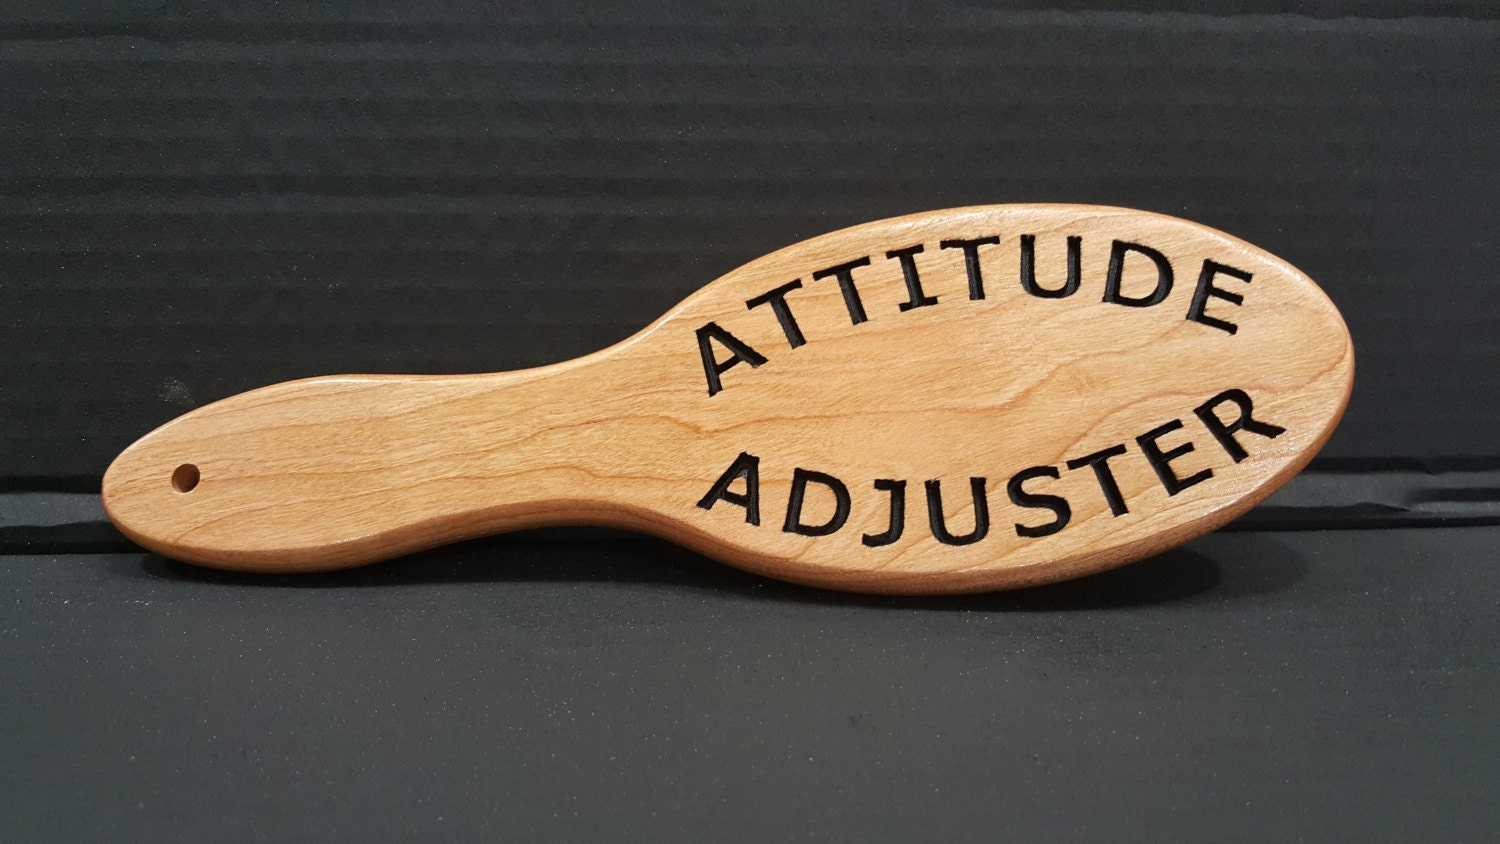 Hairbrush Paddle Attitude Adjuster High By Bassettwoodworking